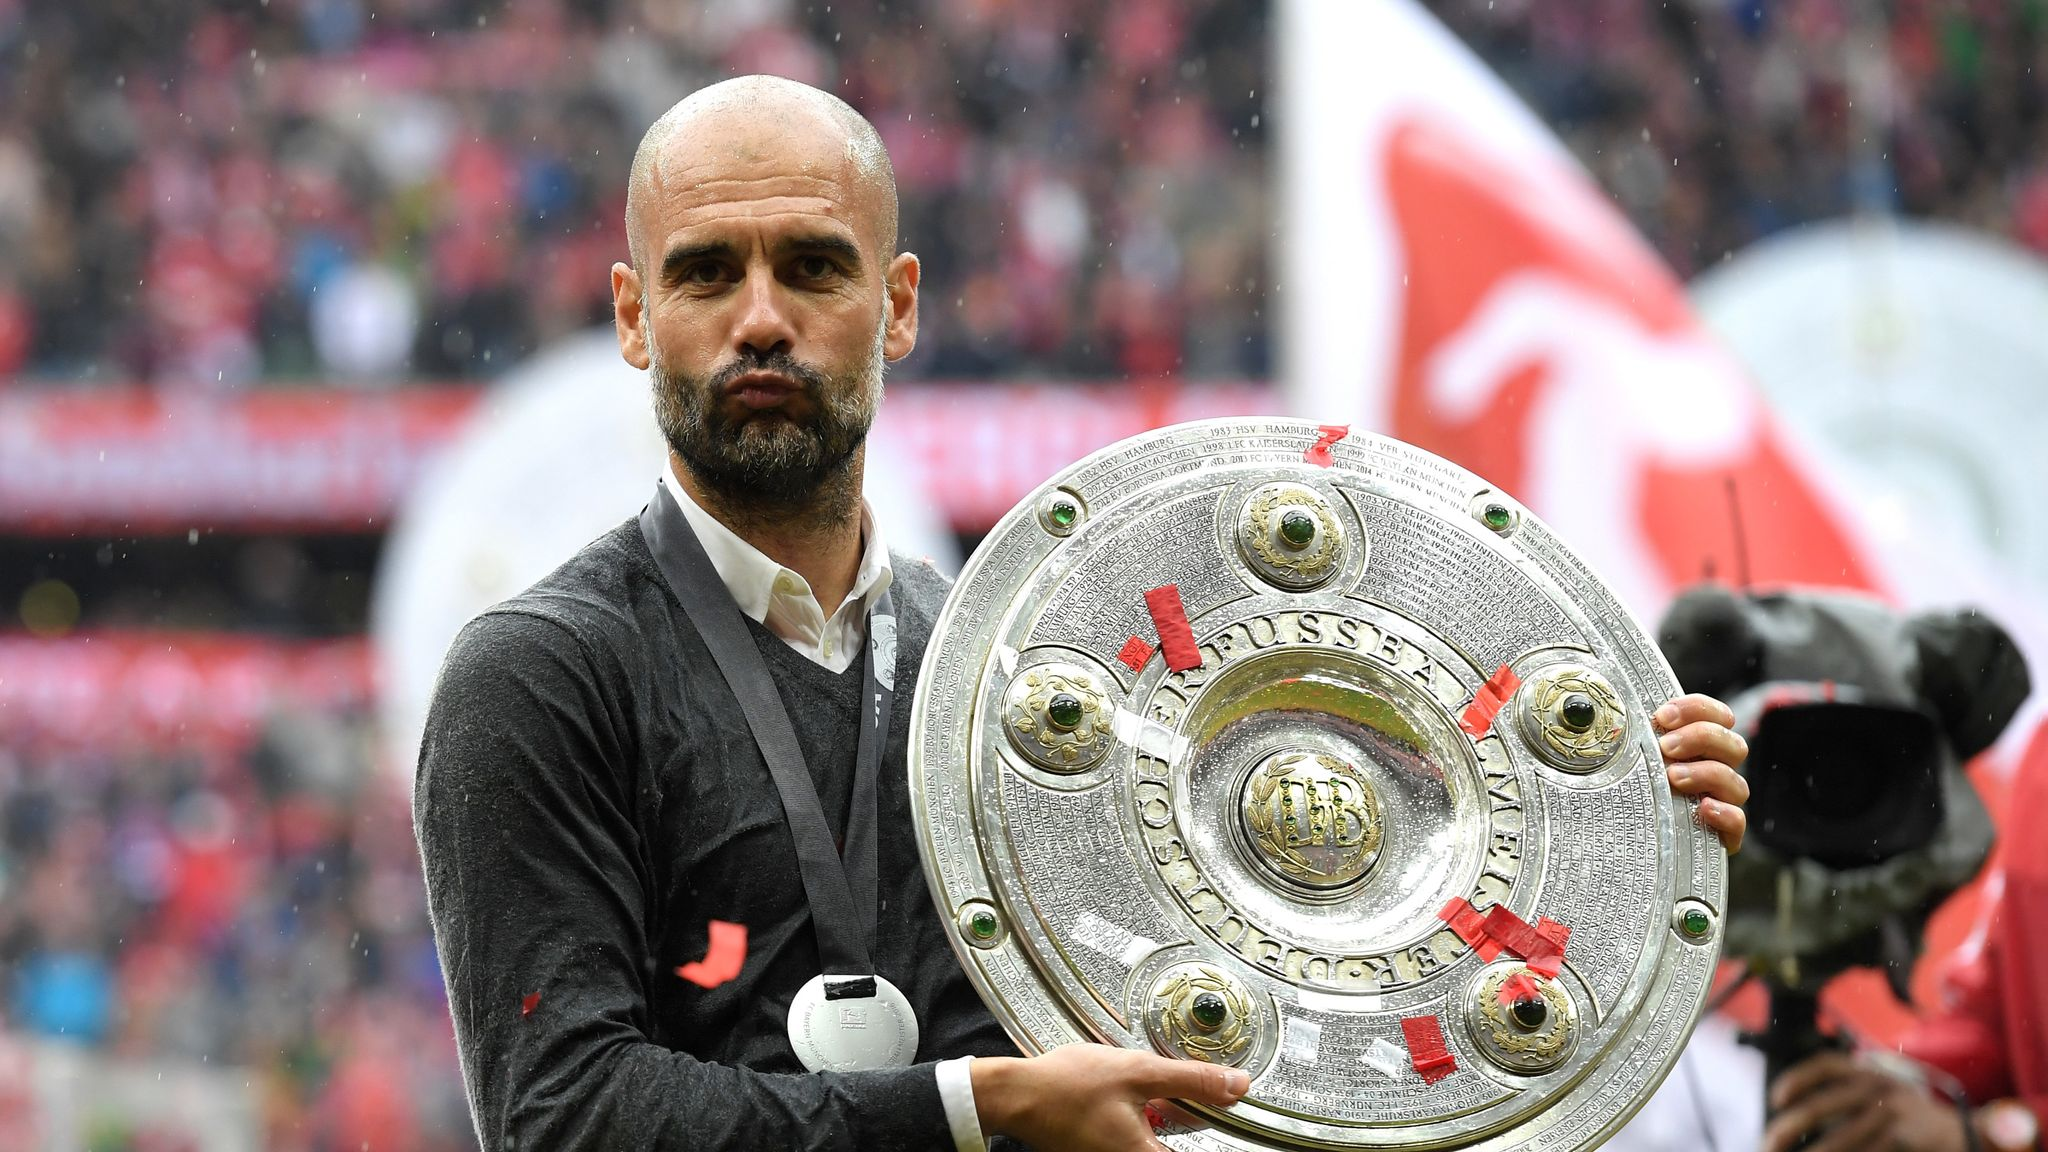 Pep Guardiola's rapid rise is not a template for managerial success